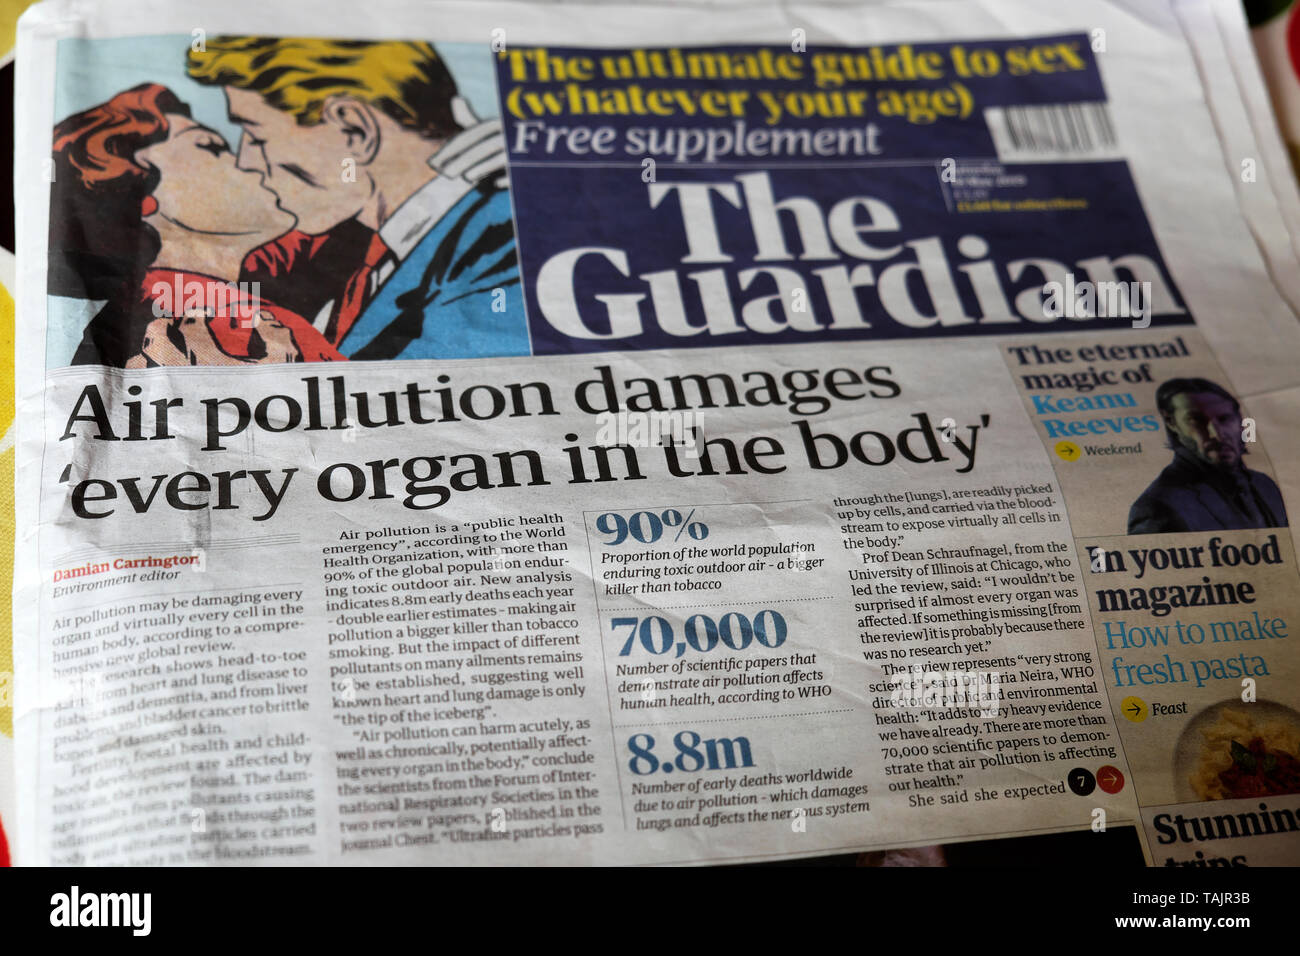 'Air pollution damages every organ in the body' Guardian newspaper front page health headline headlines on 18 May 2019  London England Britain UK GB Great Britain Europe EU - Stock Image